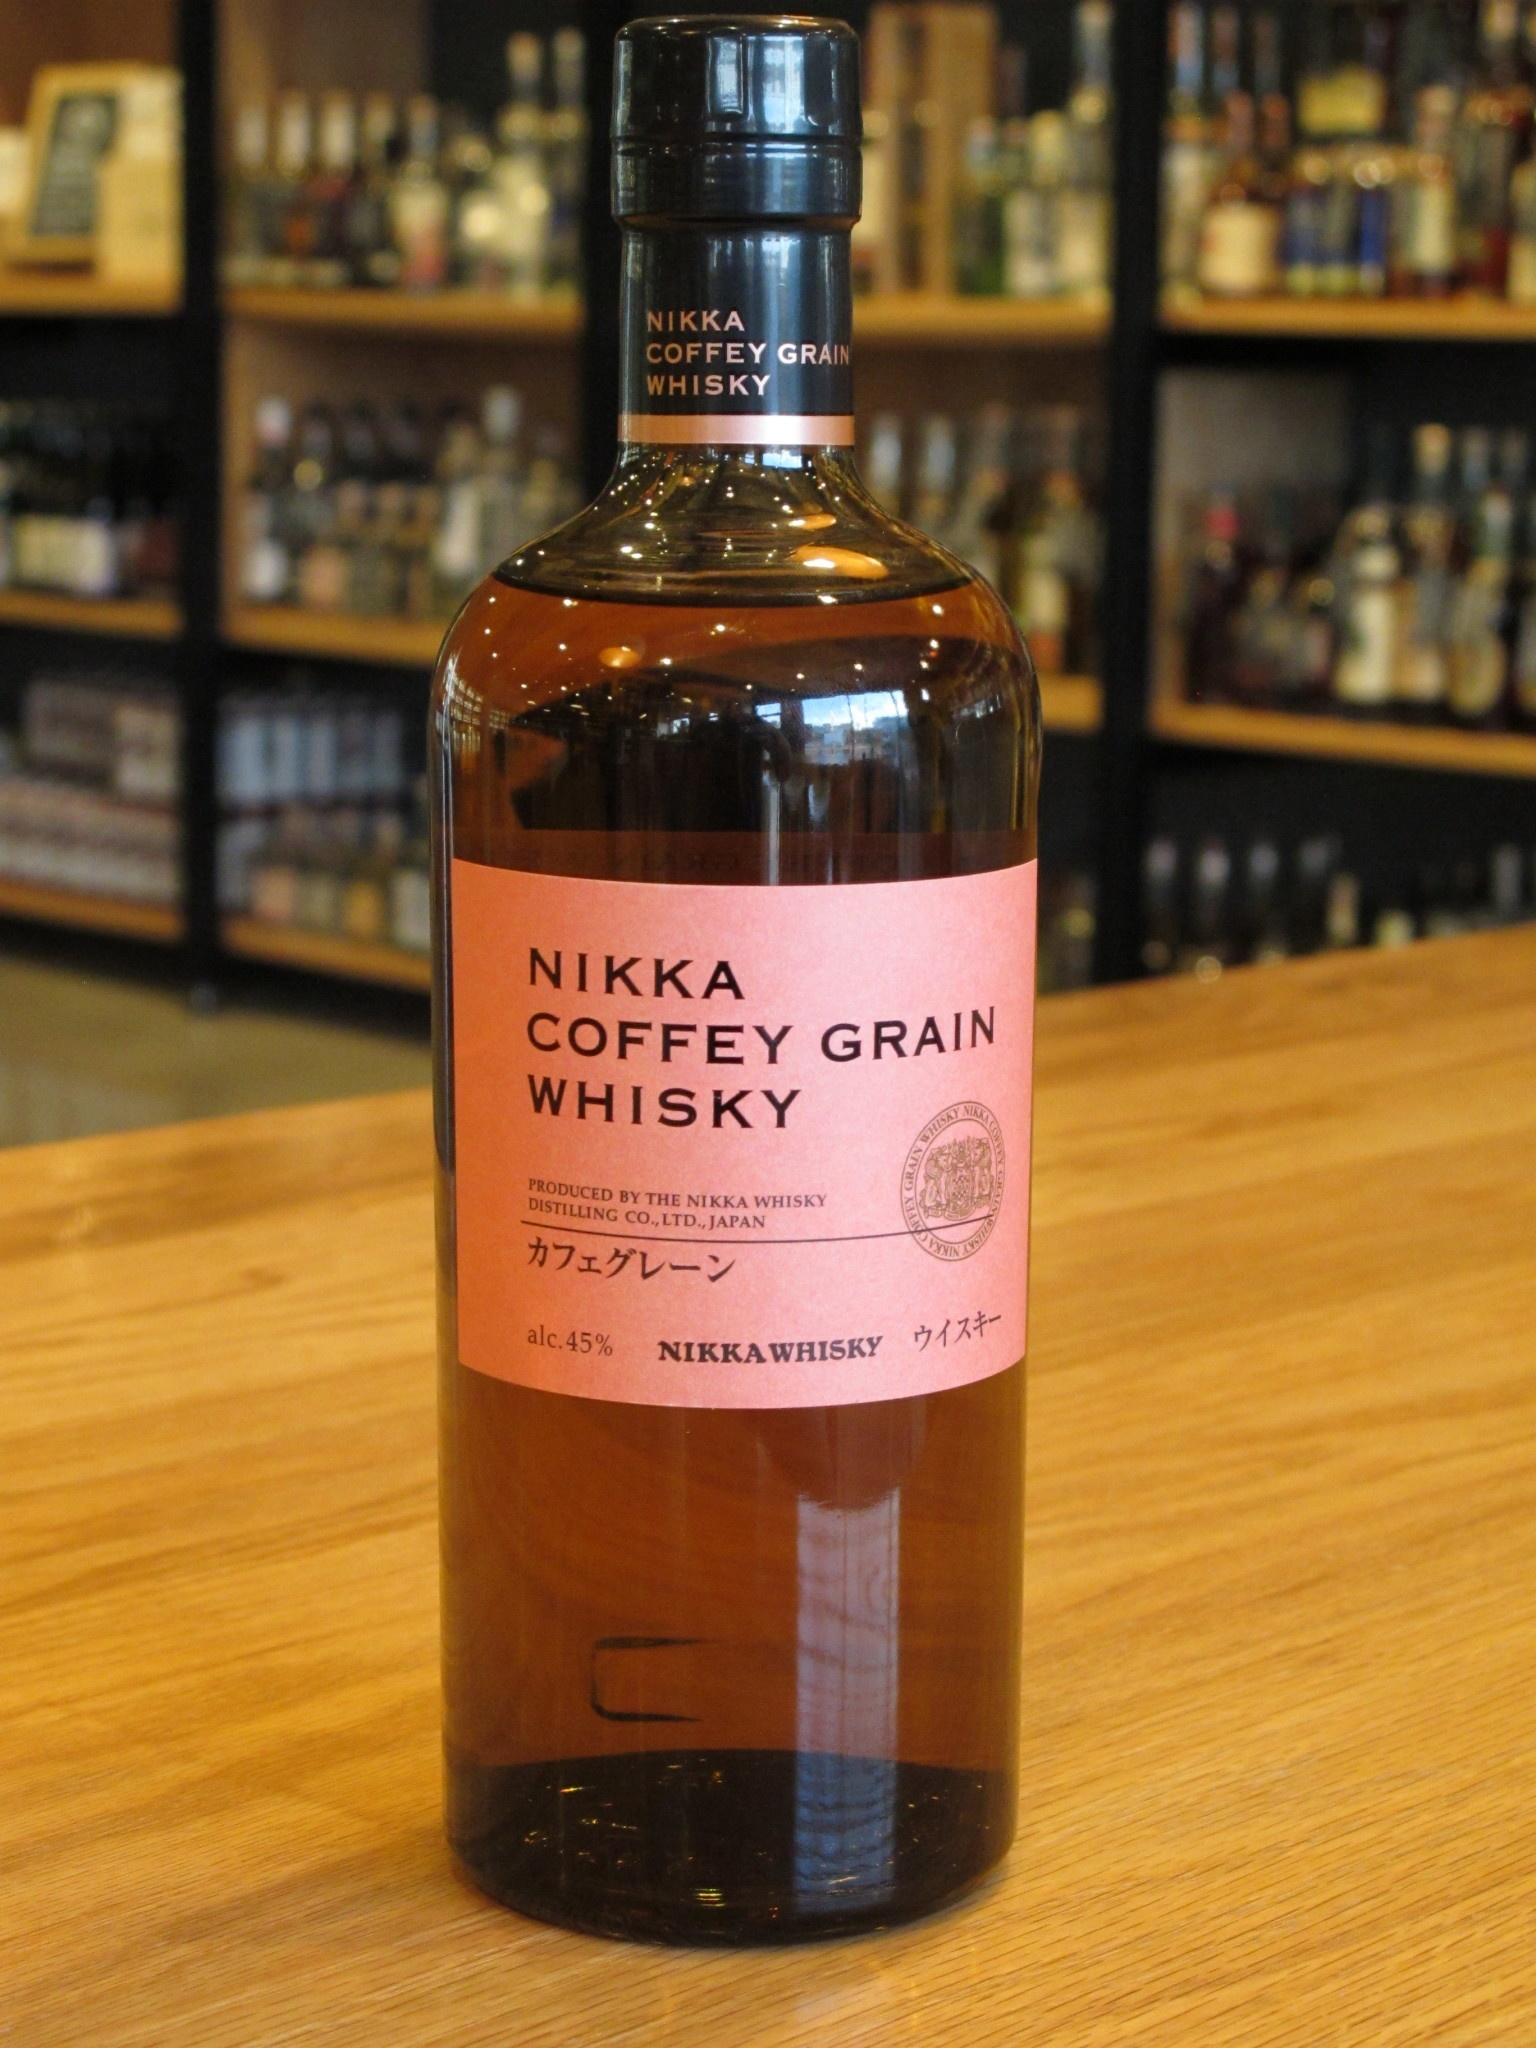 Nikka Whisky Distilling Nikka Coffey Grain Whisky 750mL